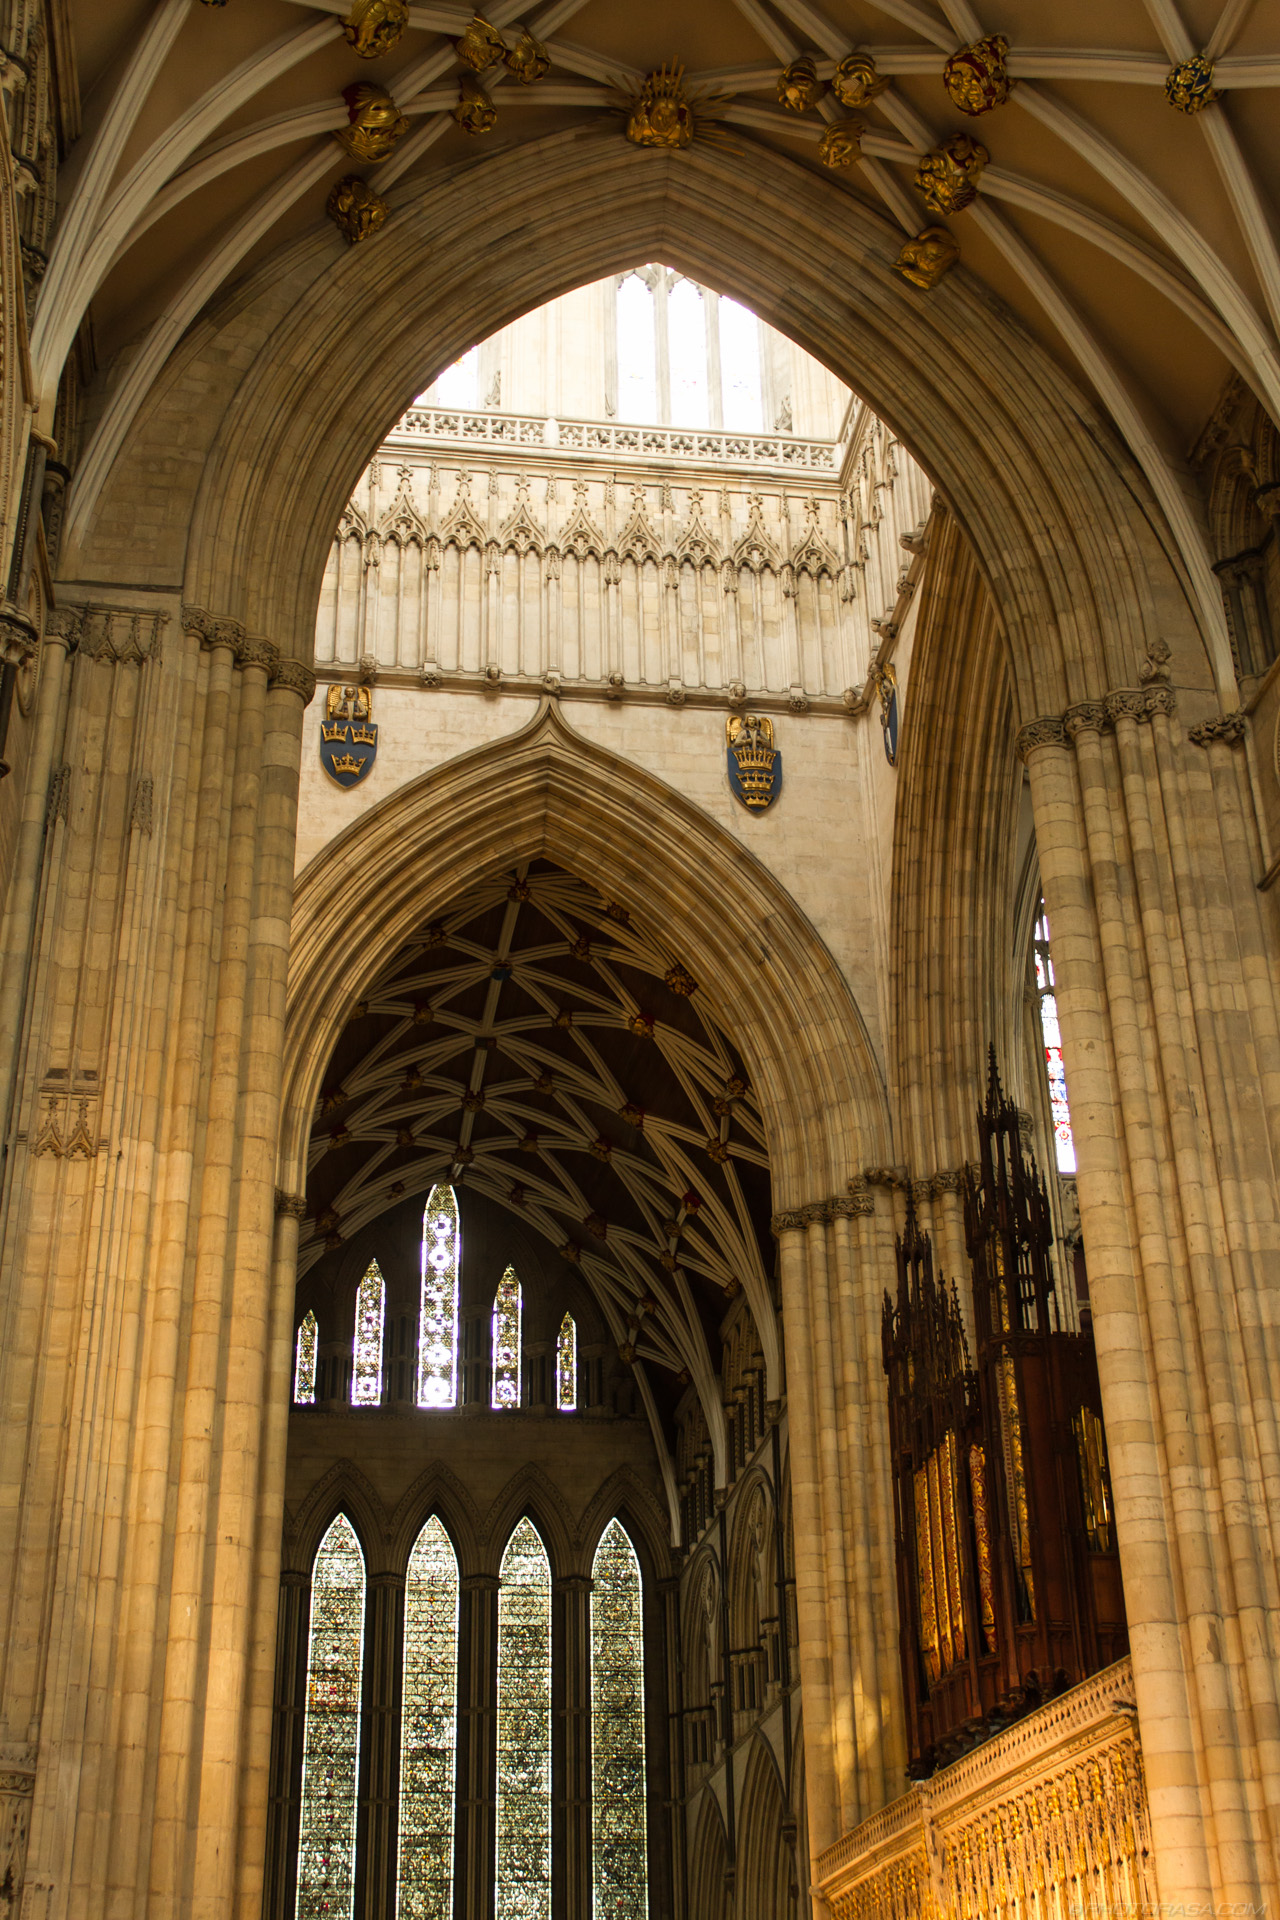 https://photorasa.com/yorkminster-cathedral/light-coming-down-from-central-tower/